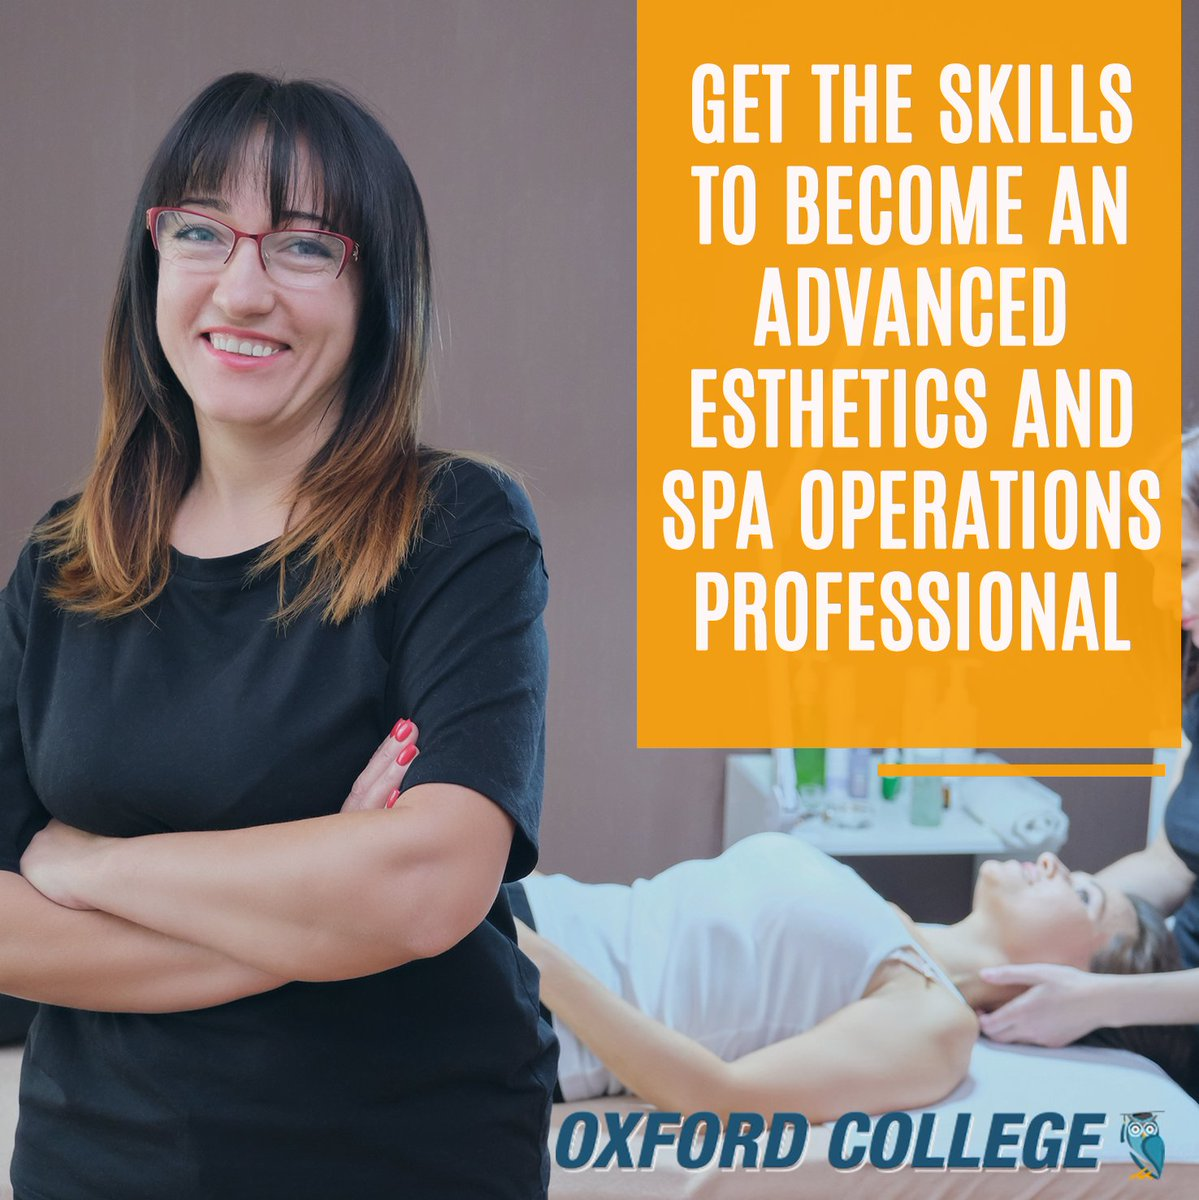 Our Advanced Esthetics and #Spa Operations program will prepare you for a range of #career opportunities and give you the confidence you need to succeed in today's #beauty industry.  Interested? Discover this program: https://hubs.ly/H0ryFdc0  #OxfordCollege #OxfordEdupic.twitter.com/PNl0oreSBR